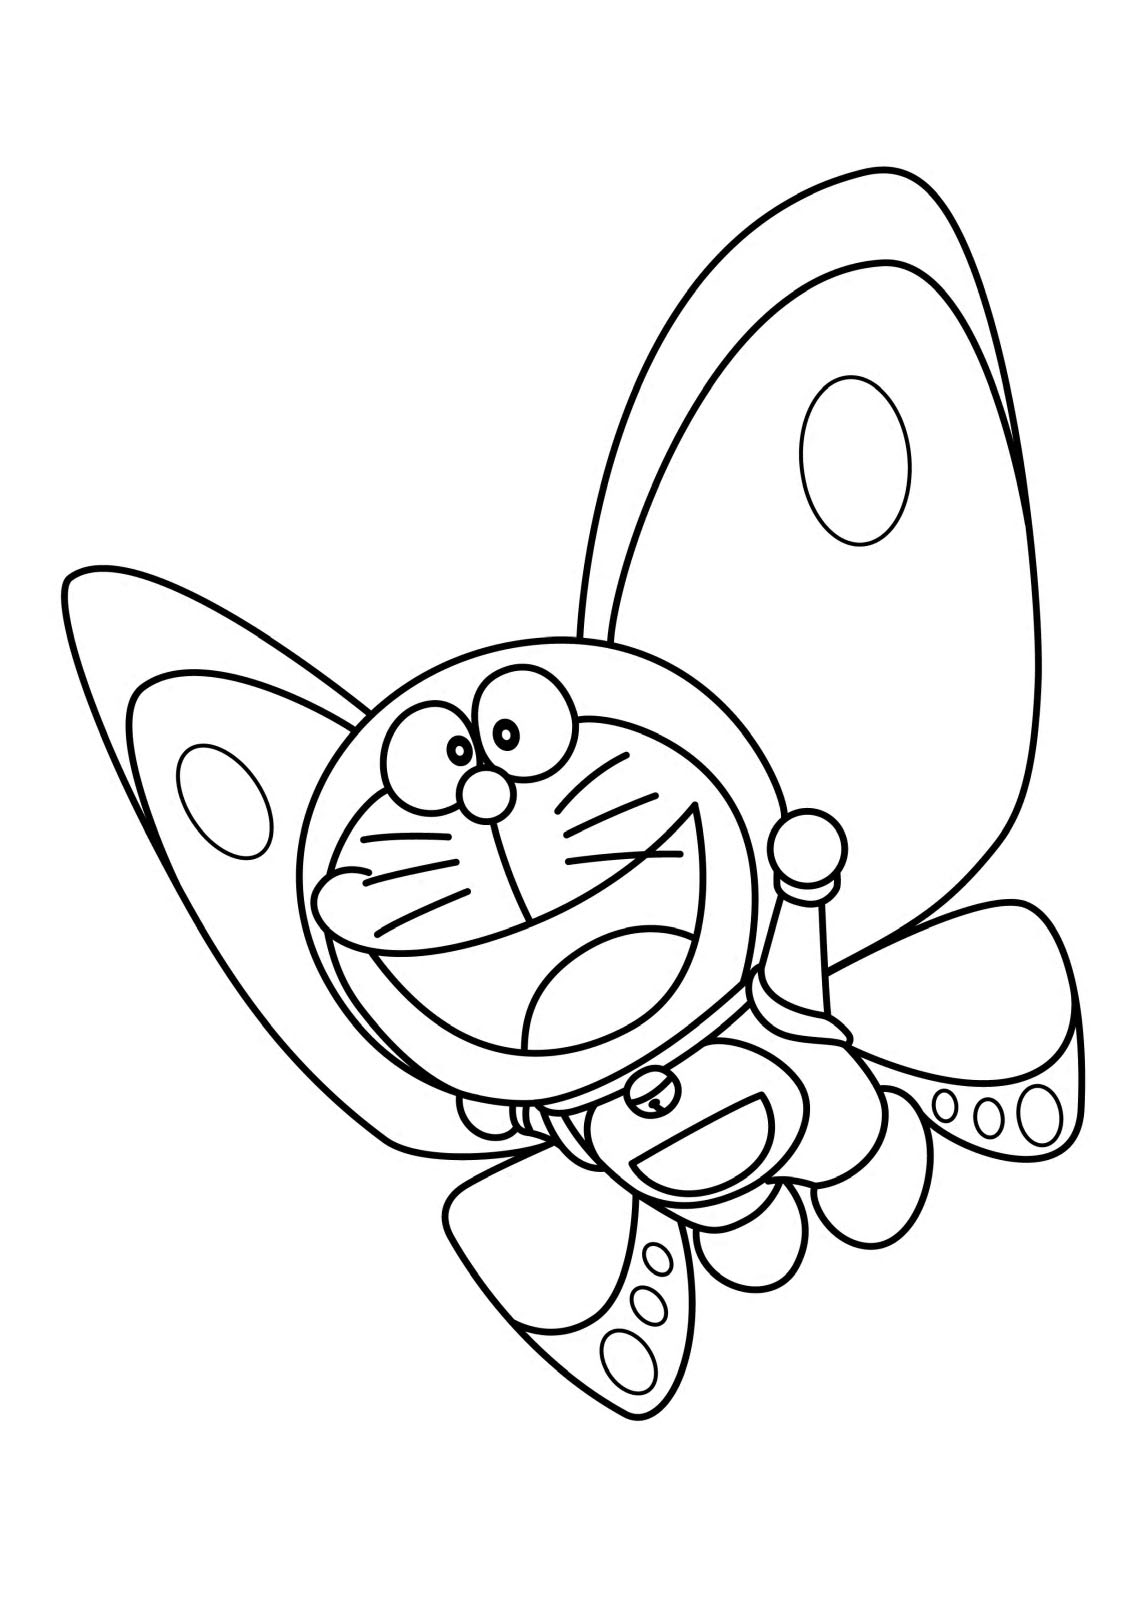 Doraemon Coloring Pages to download